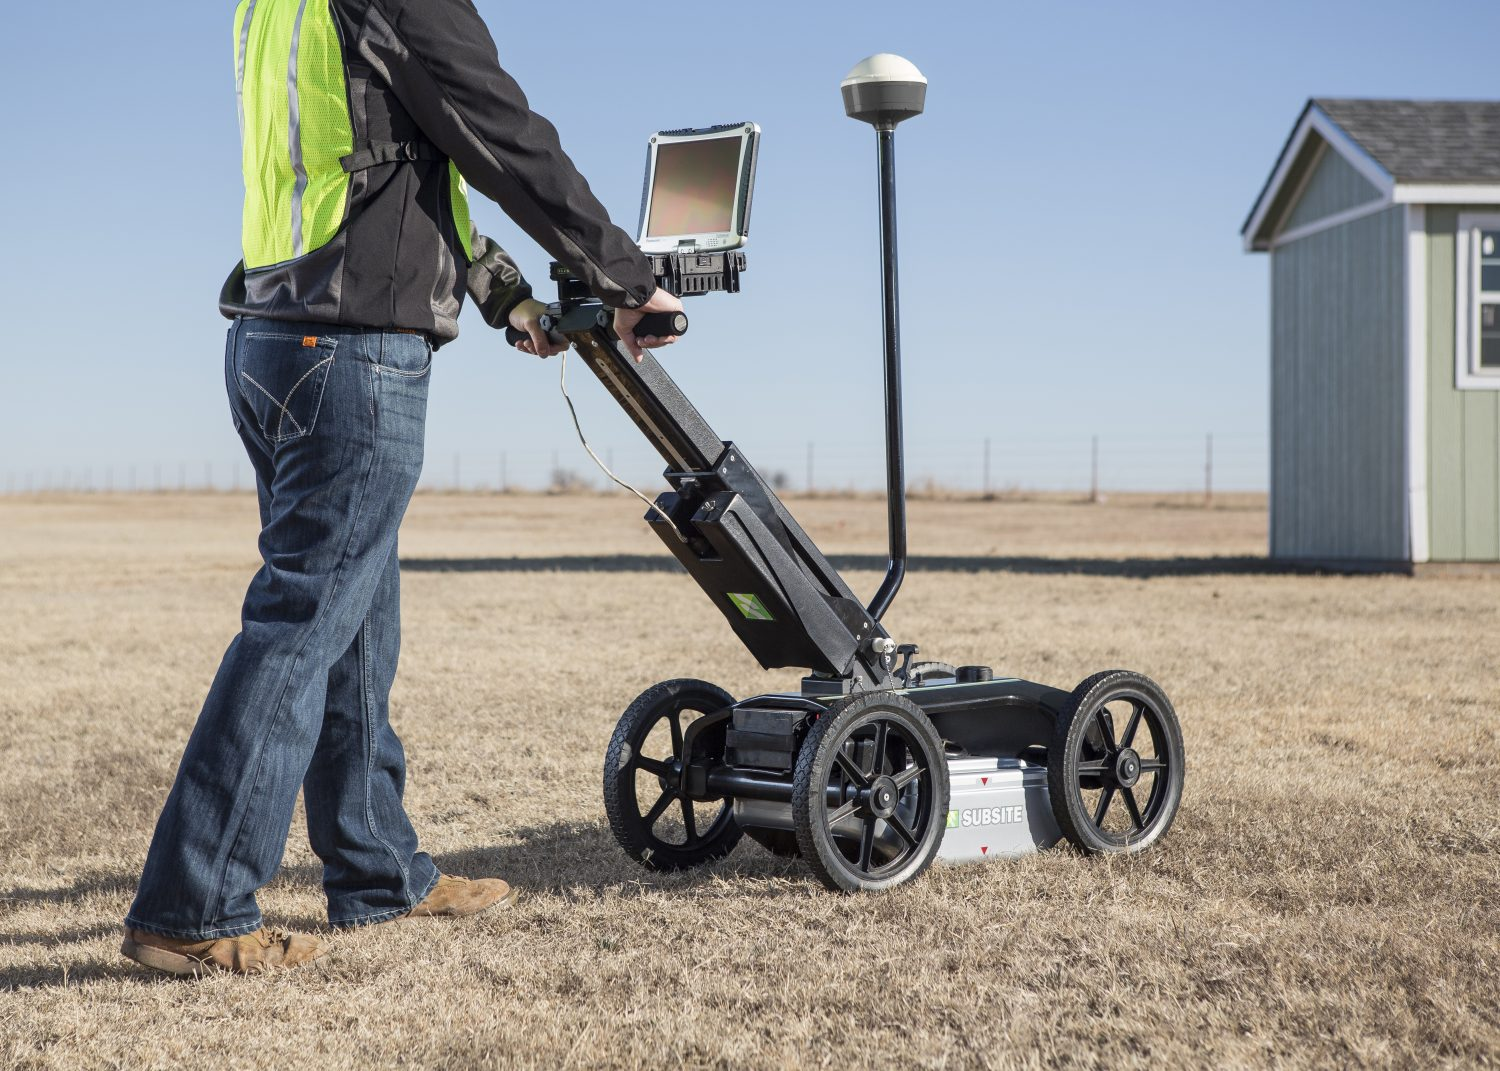 Man using Subsite 2550GPR